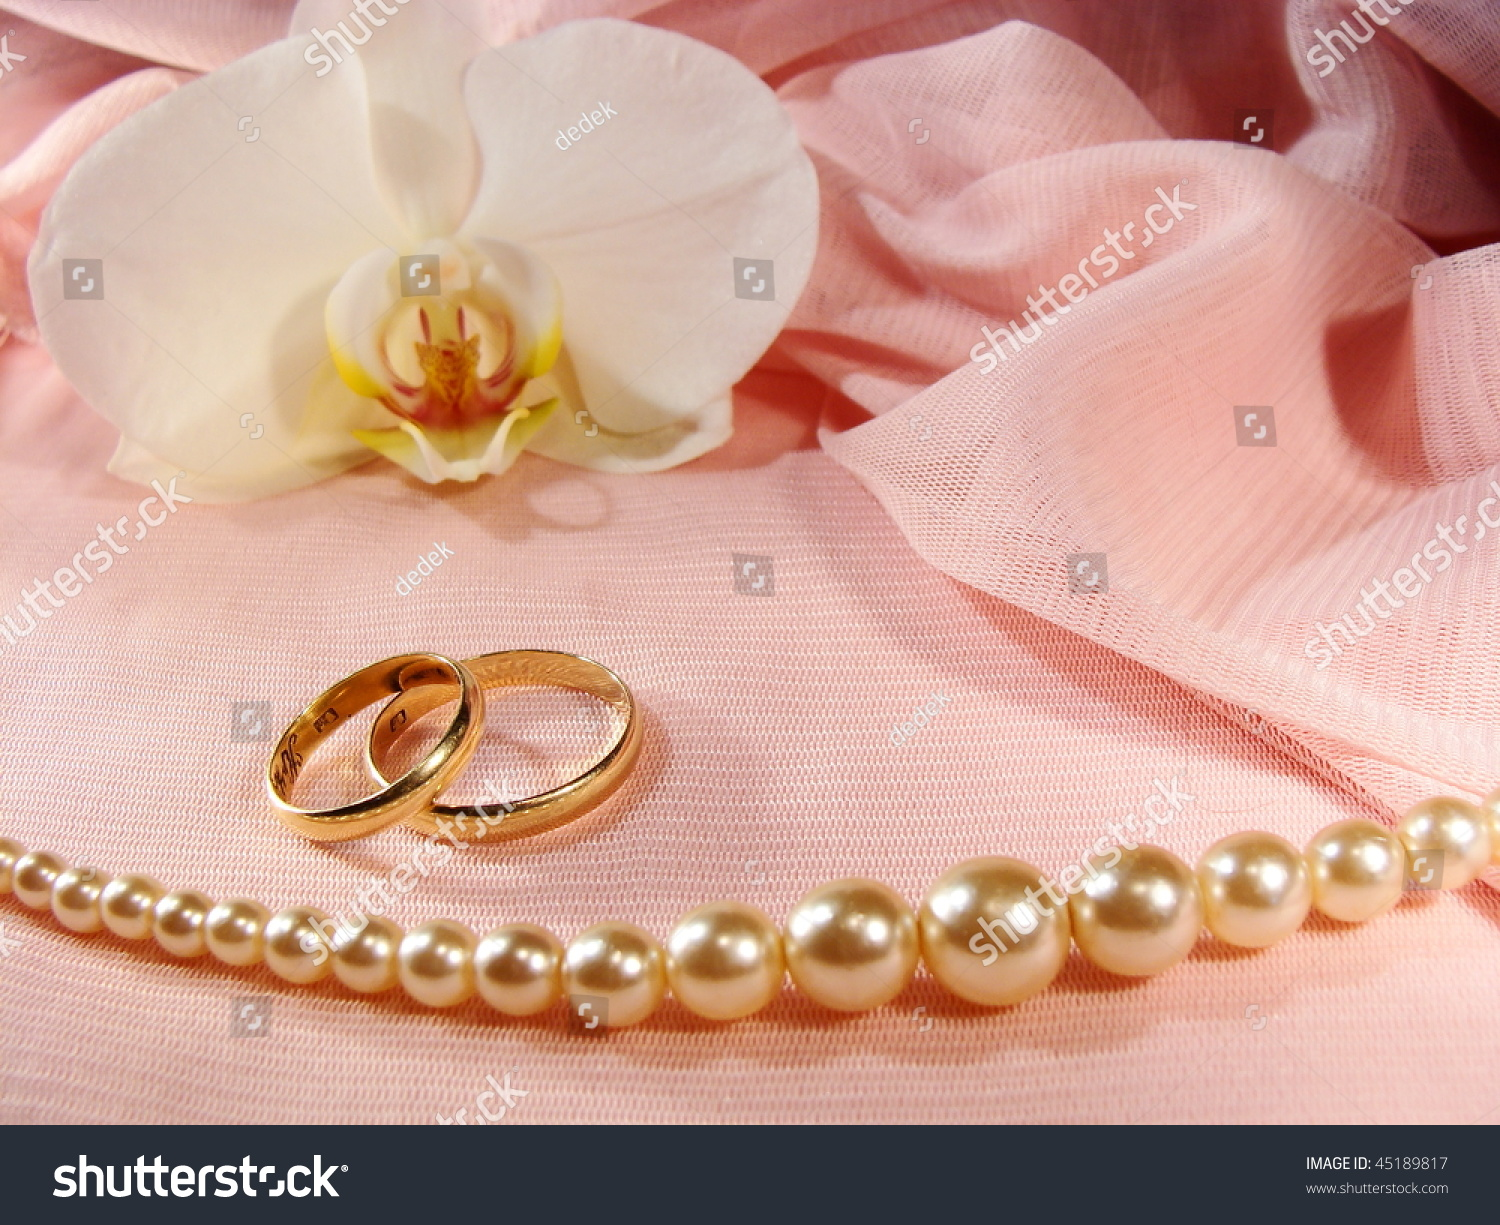 Love You Gold Wedding Rings On Stock Photo (Edit Now) 45189817 ...